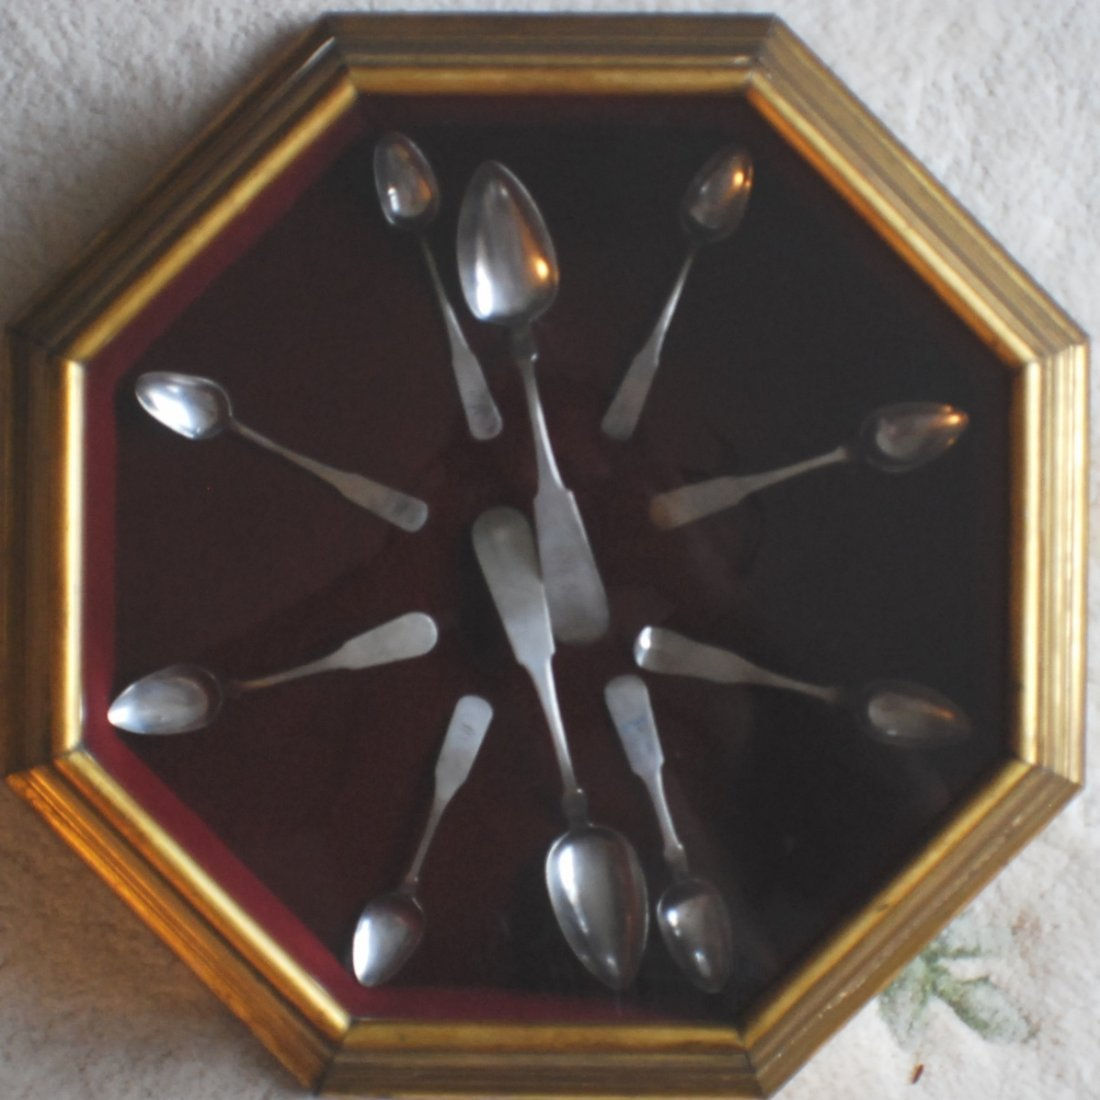 6: Octagonal Display with 10 pcs. 1800's Coin Silver sp